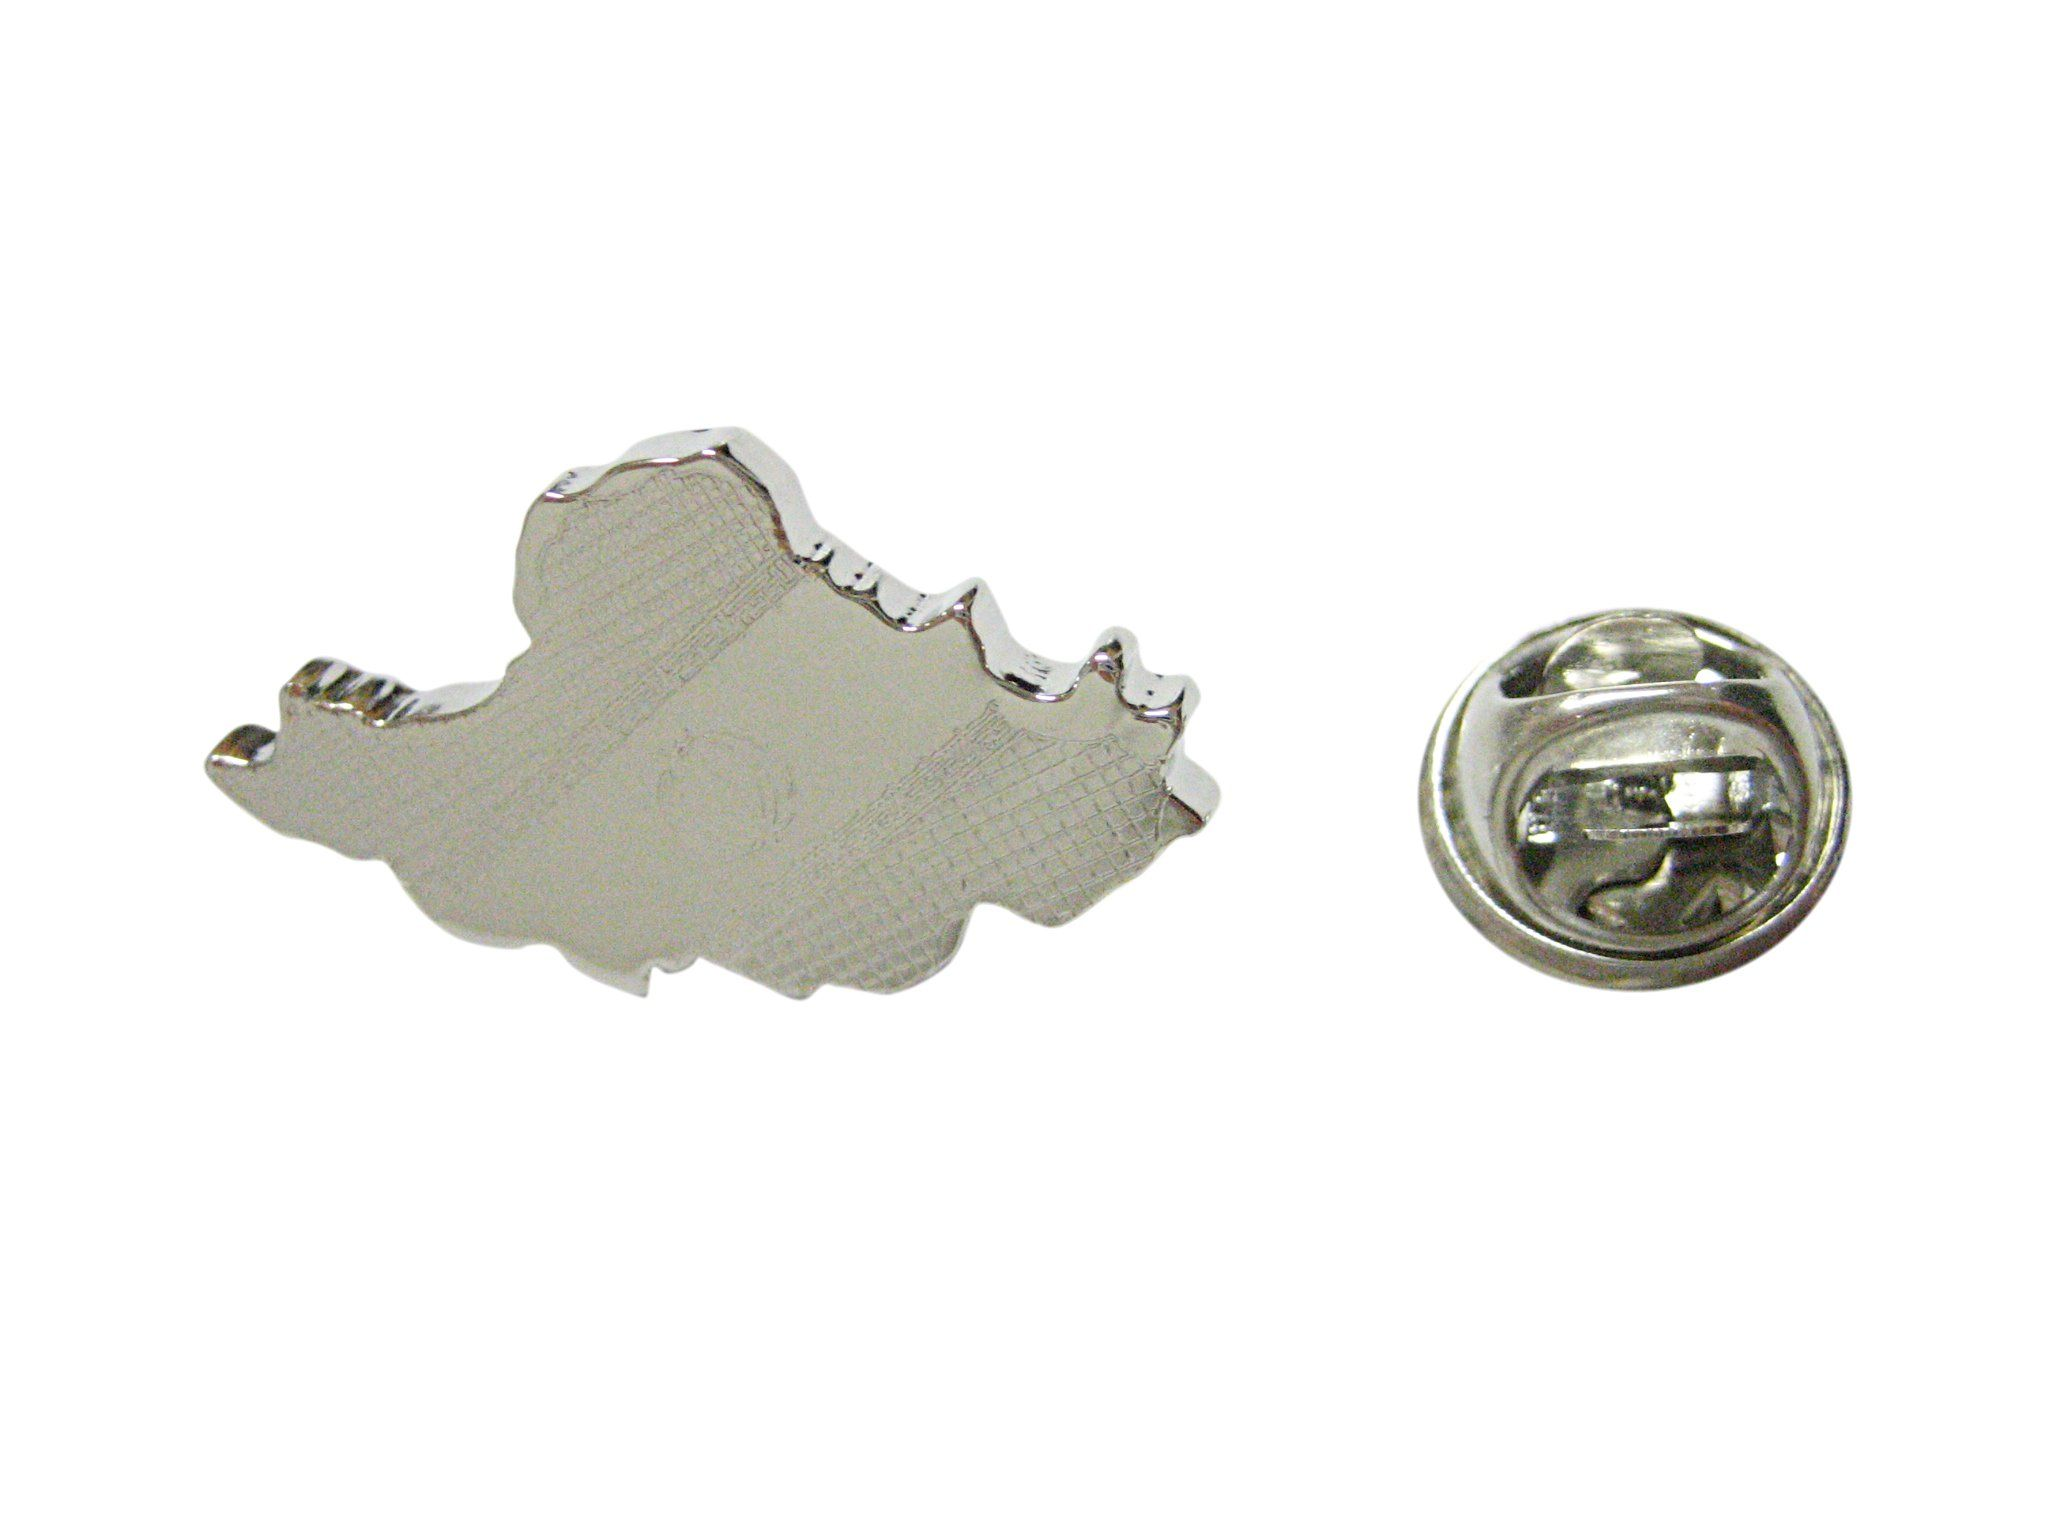 Iran Map Shape and Flag Design Lapel